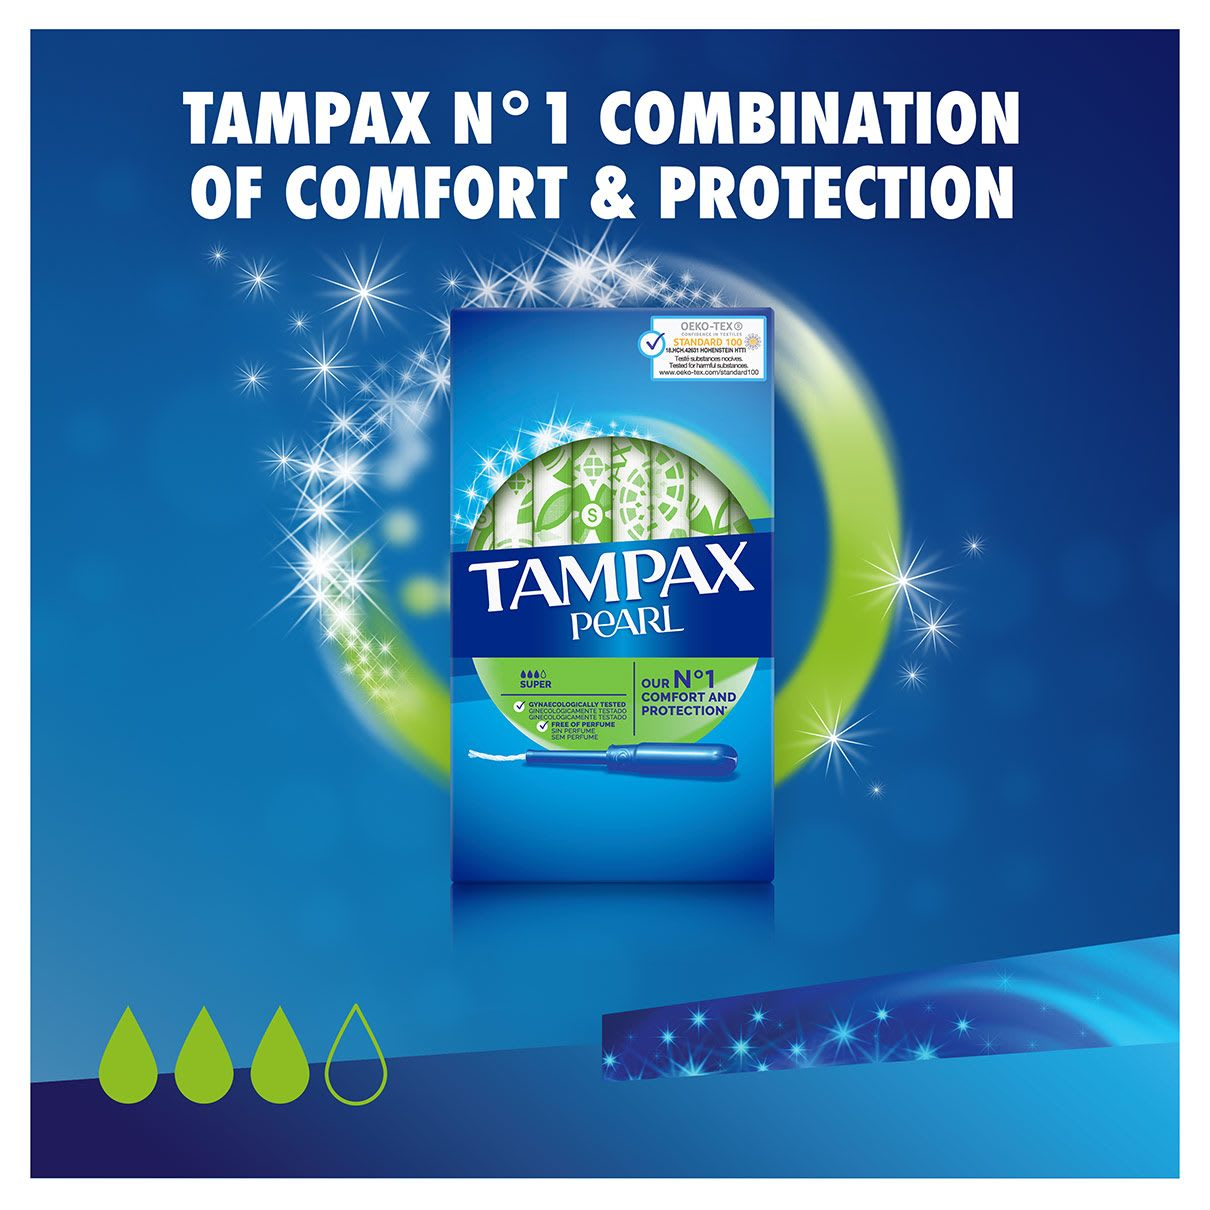 TAMPAX pearl applicator